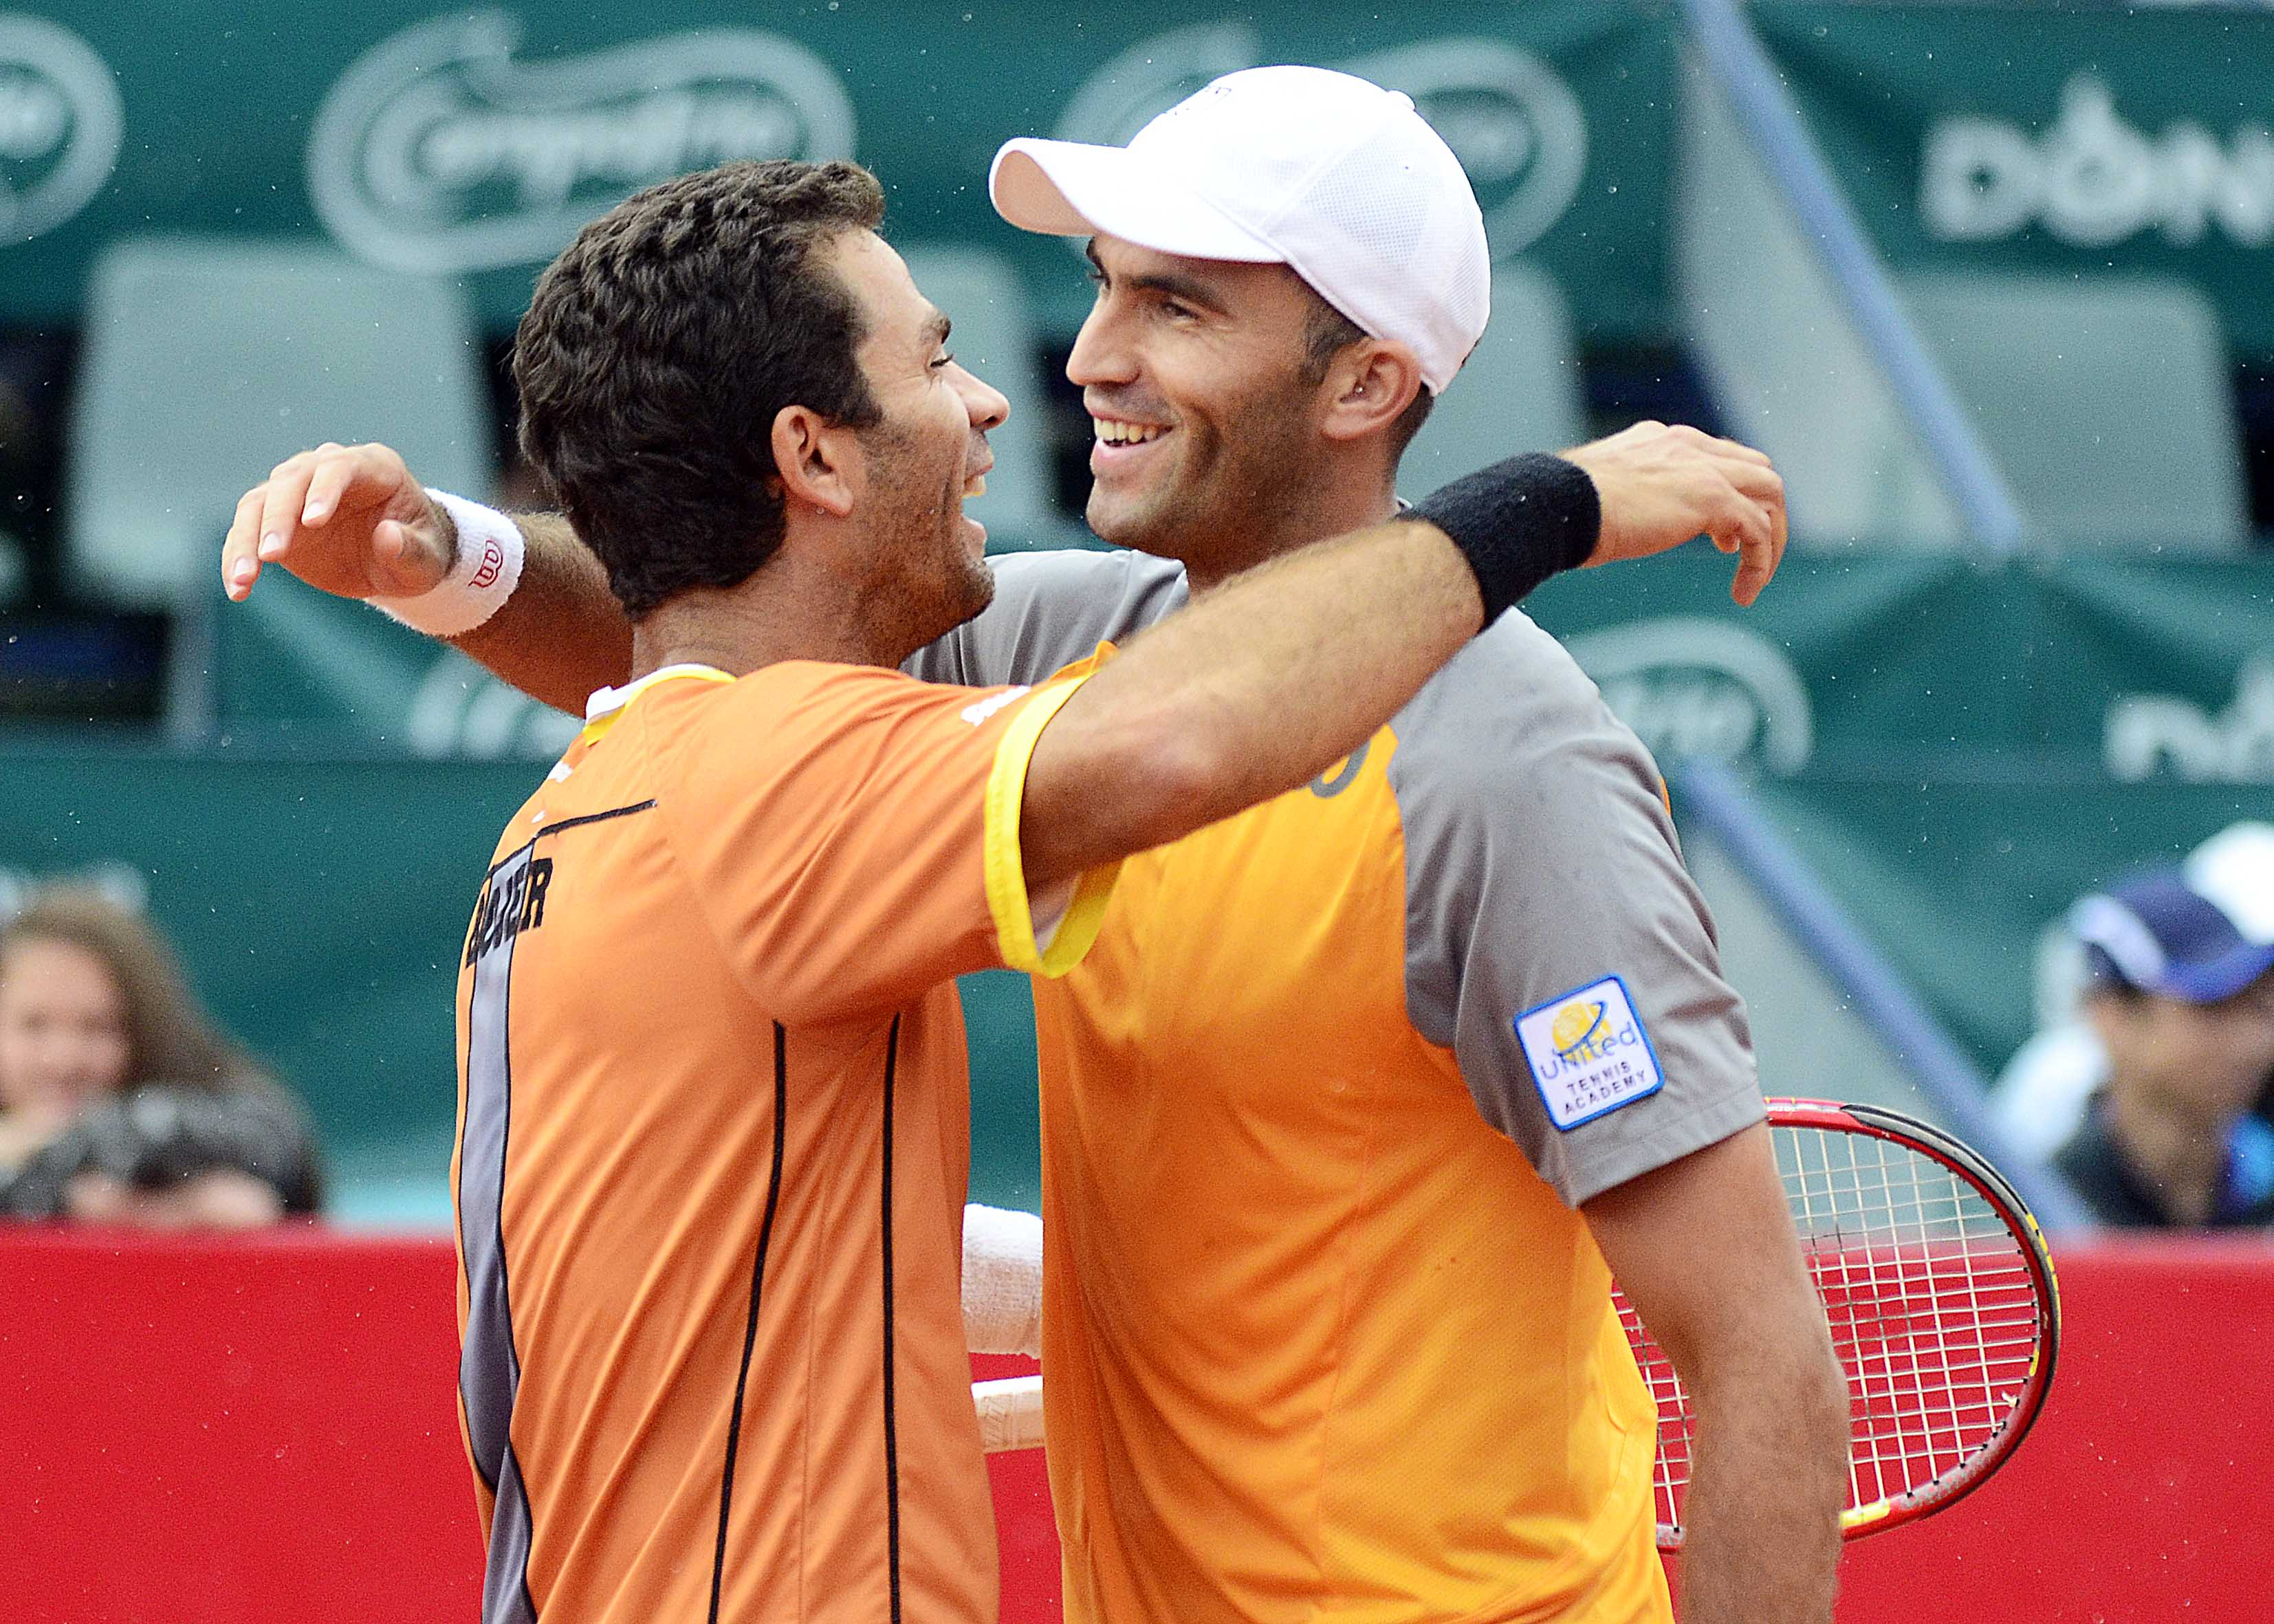 Tecău and Rojer become number 1 team în ATP doubles rankings